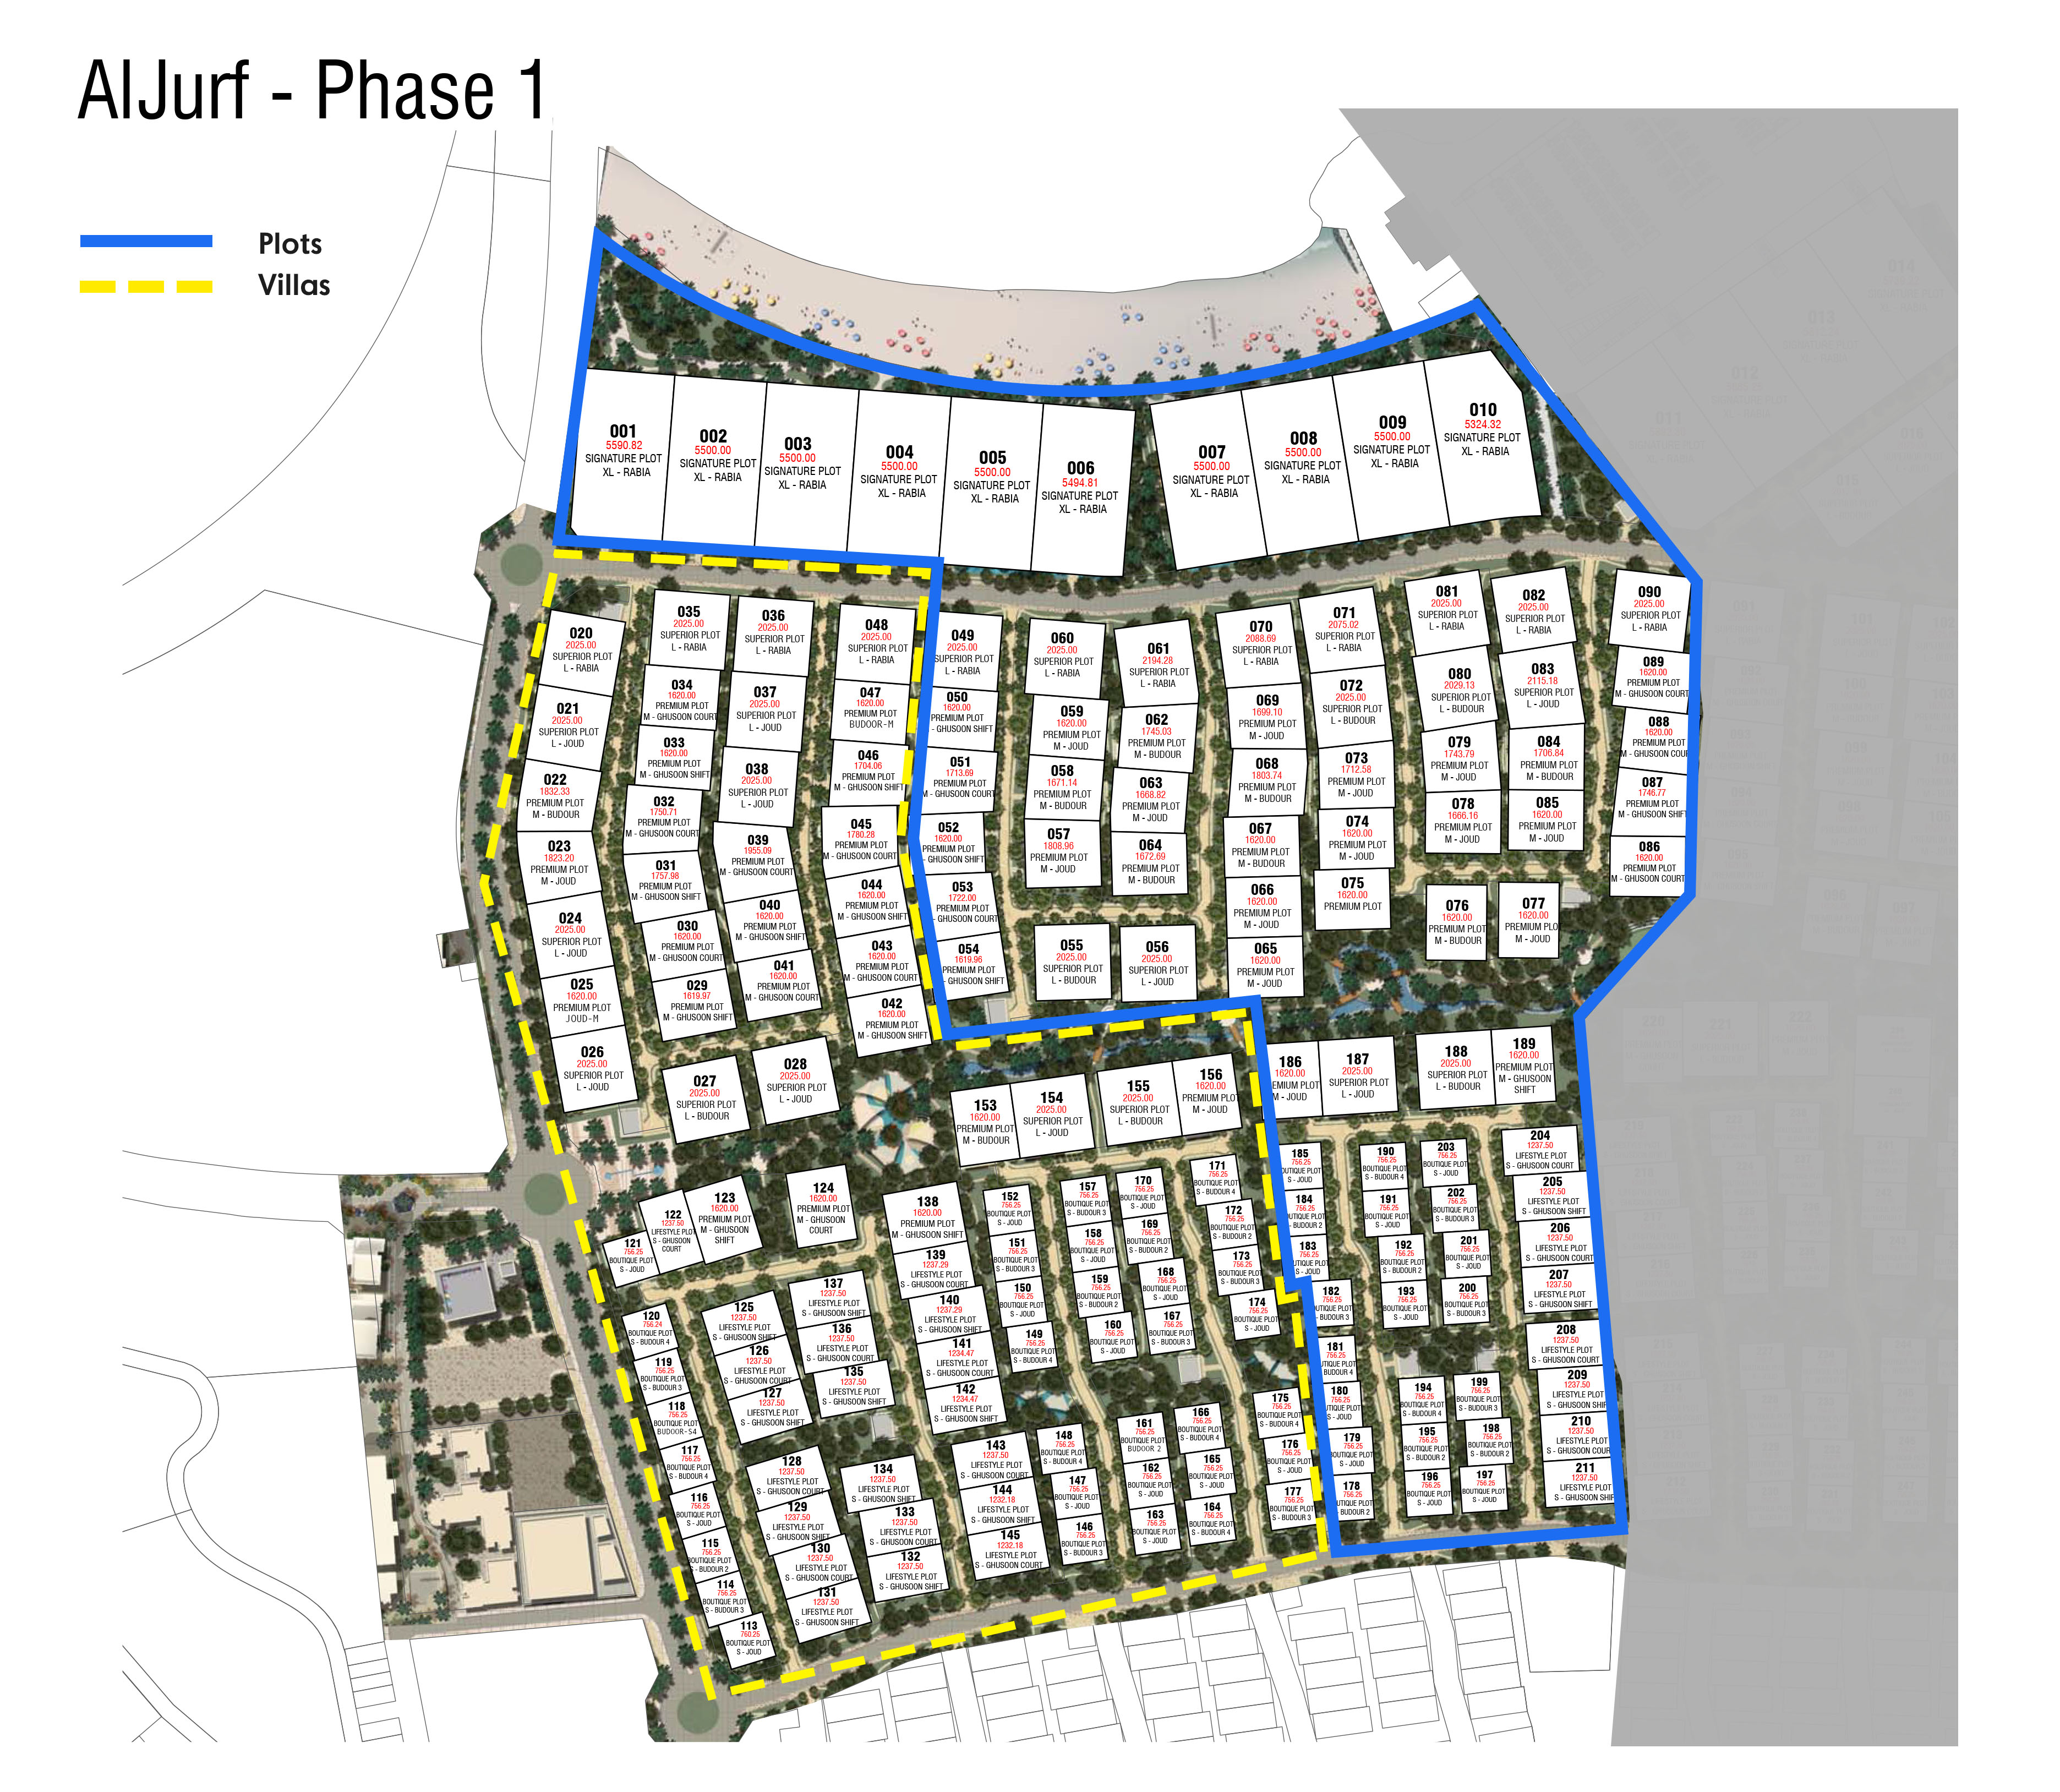 Aljurf Villas & Land Plots Phase 1 Master Plan